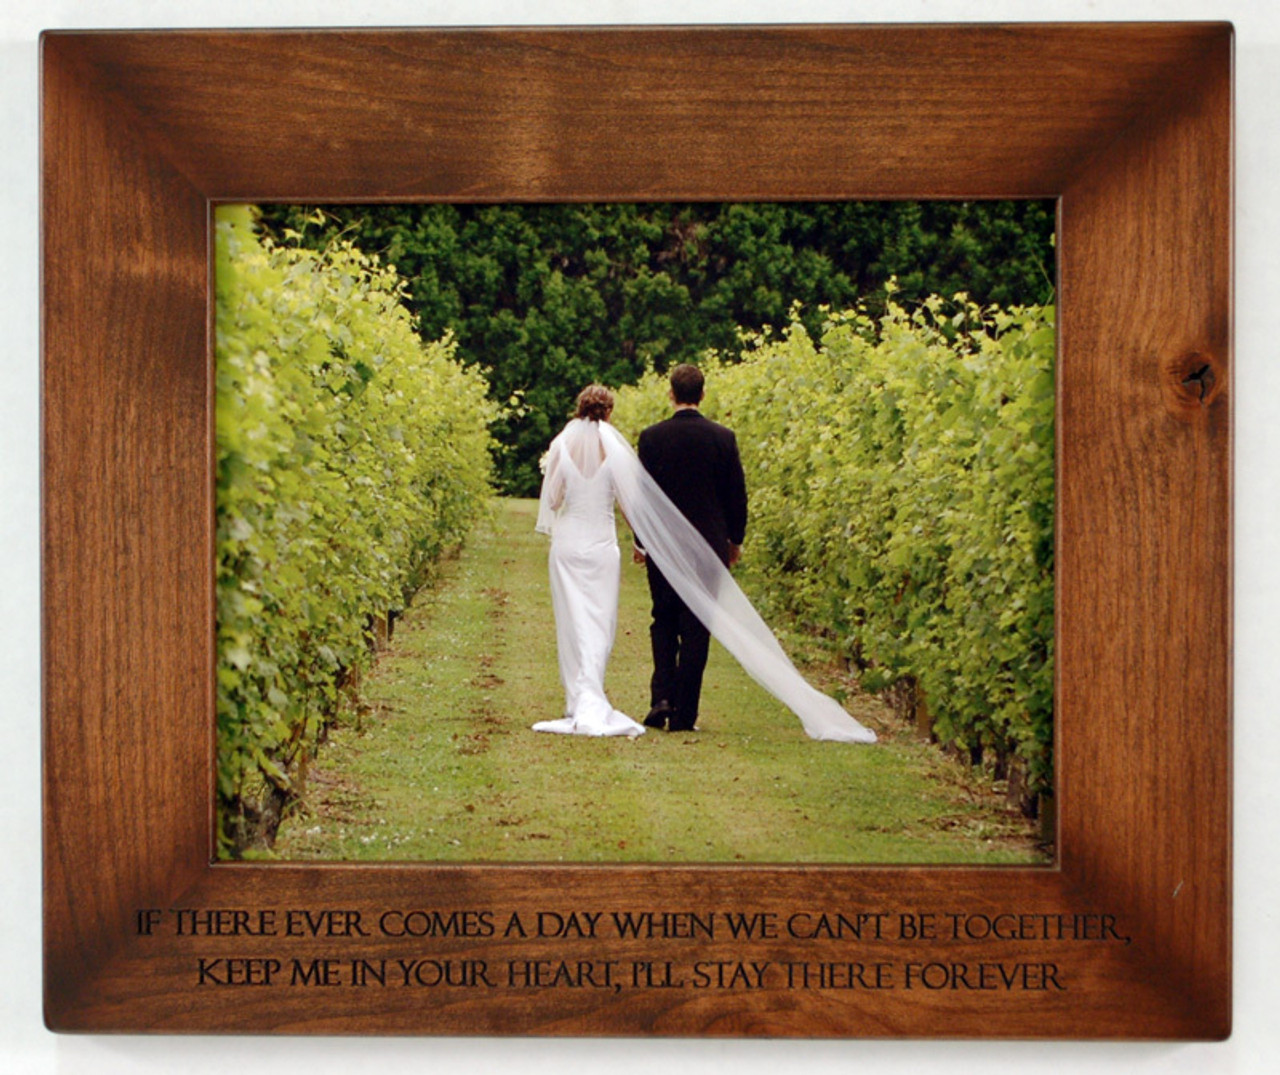 8x10 Laser Engraved Wood Picture Frame | Personalized Wood Frames